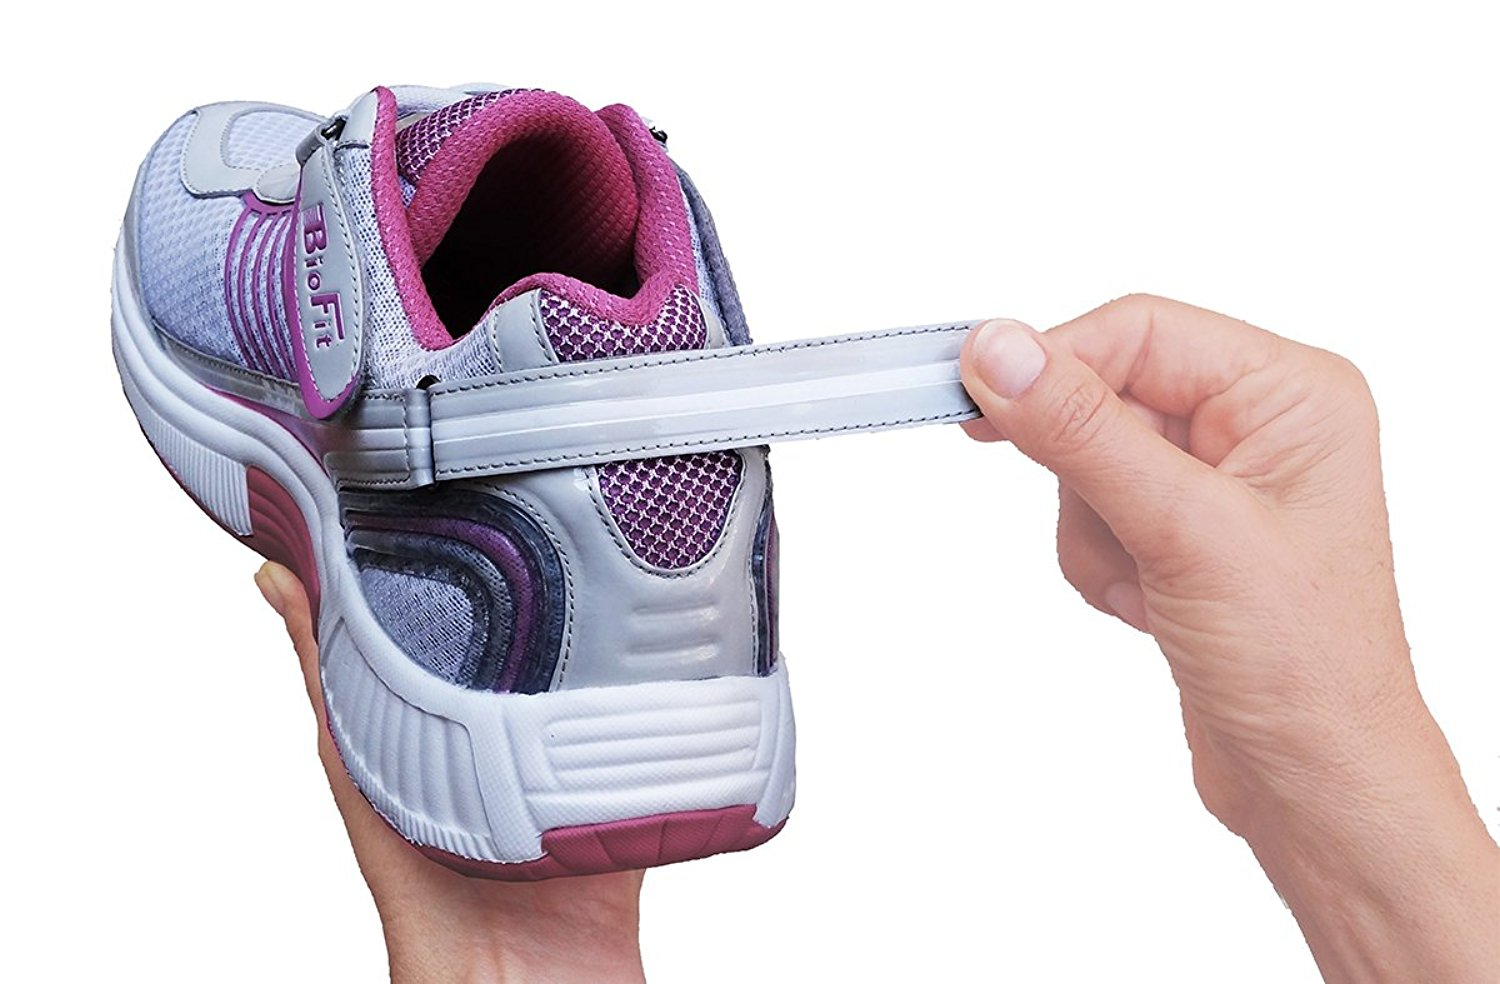 Orthofeet Most Comfortable Foot Wear For Painful Feet Arthritis